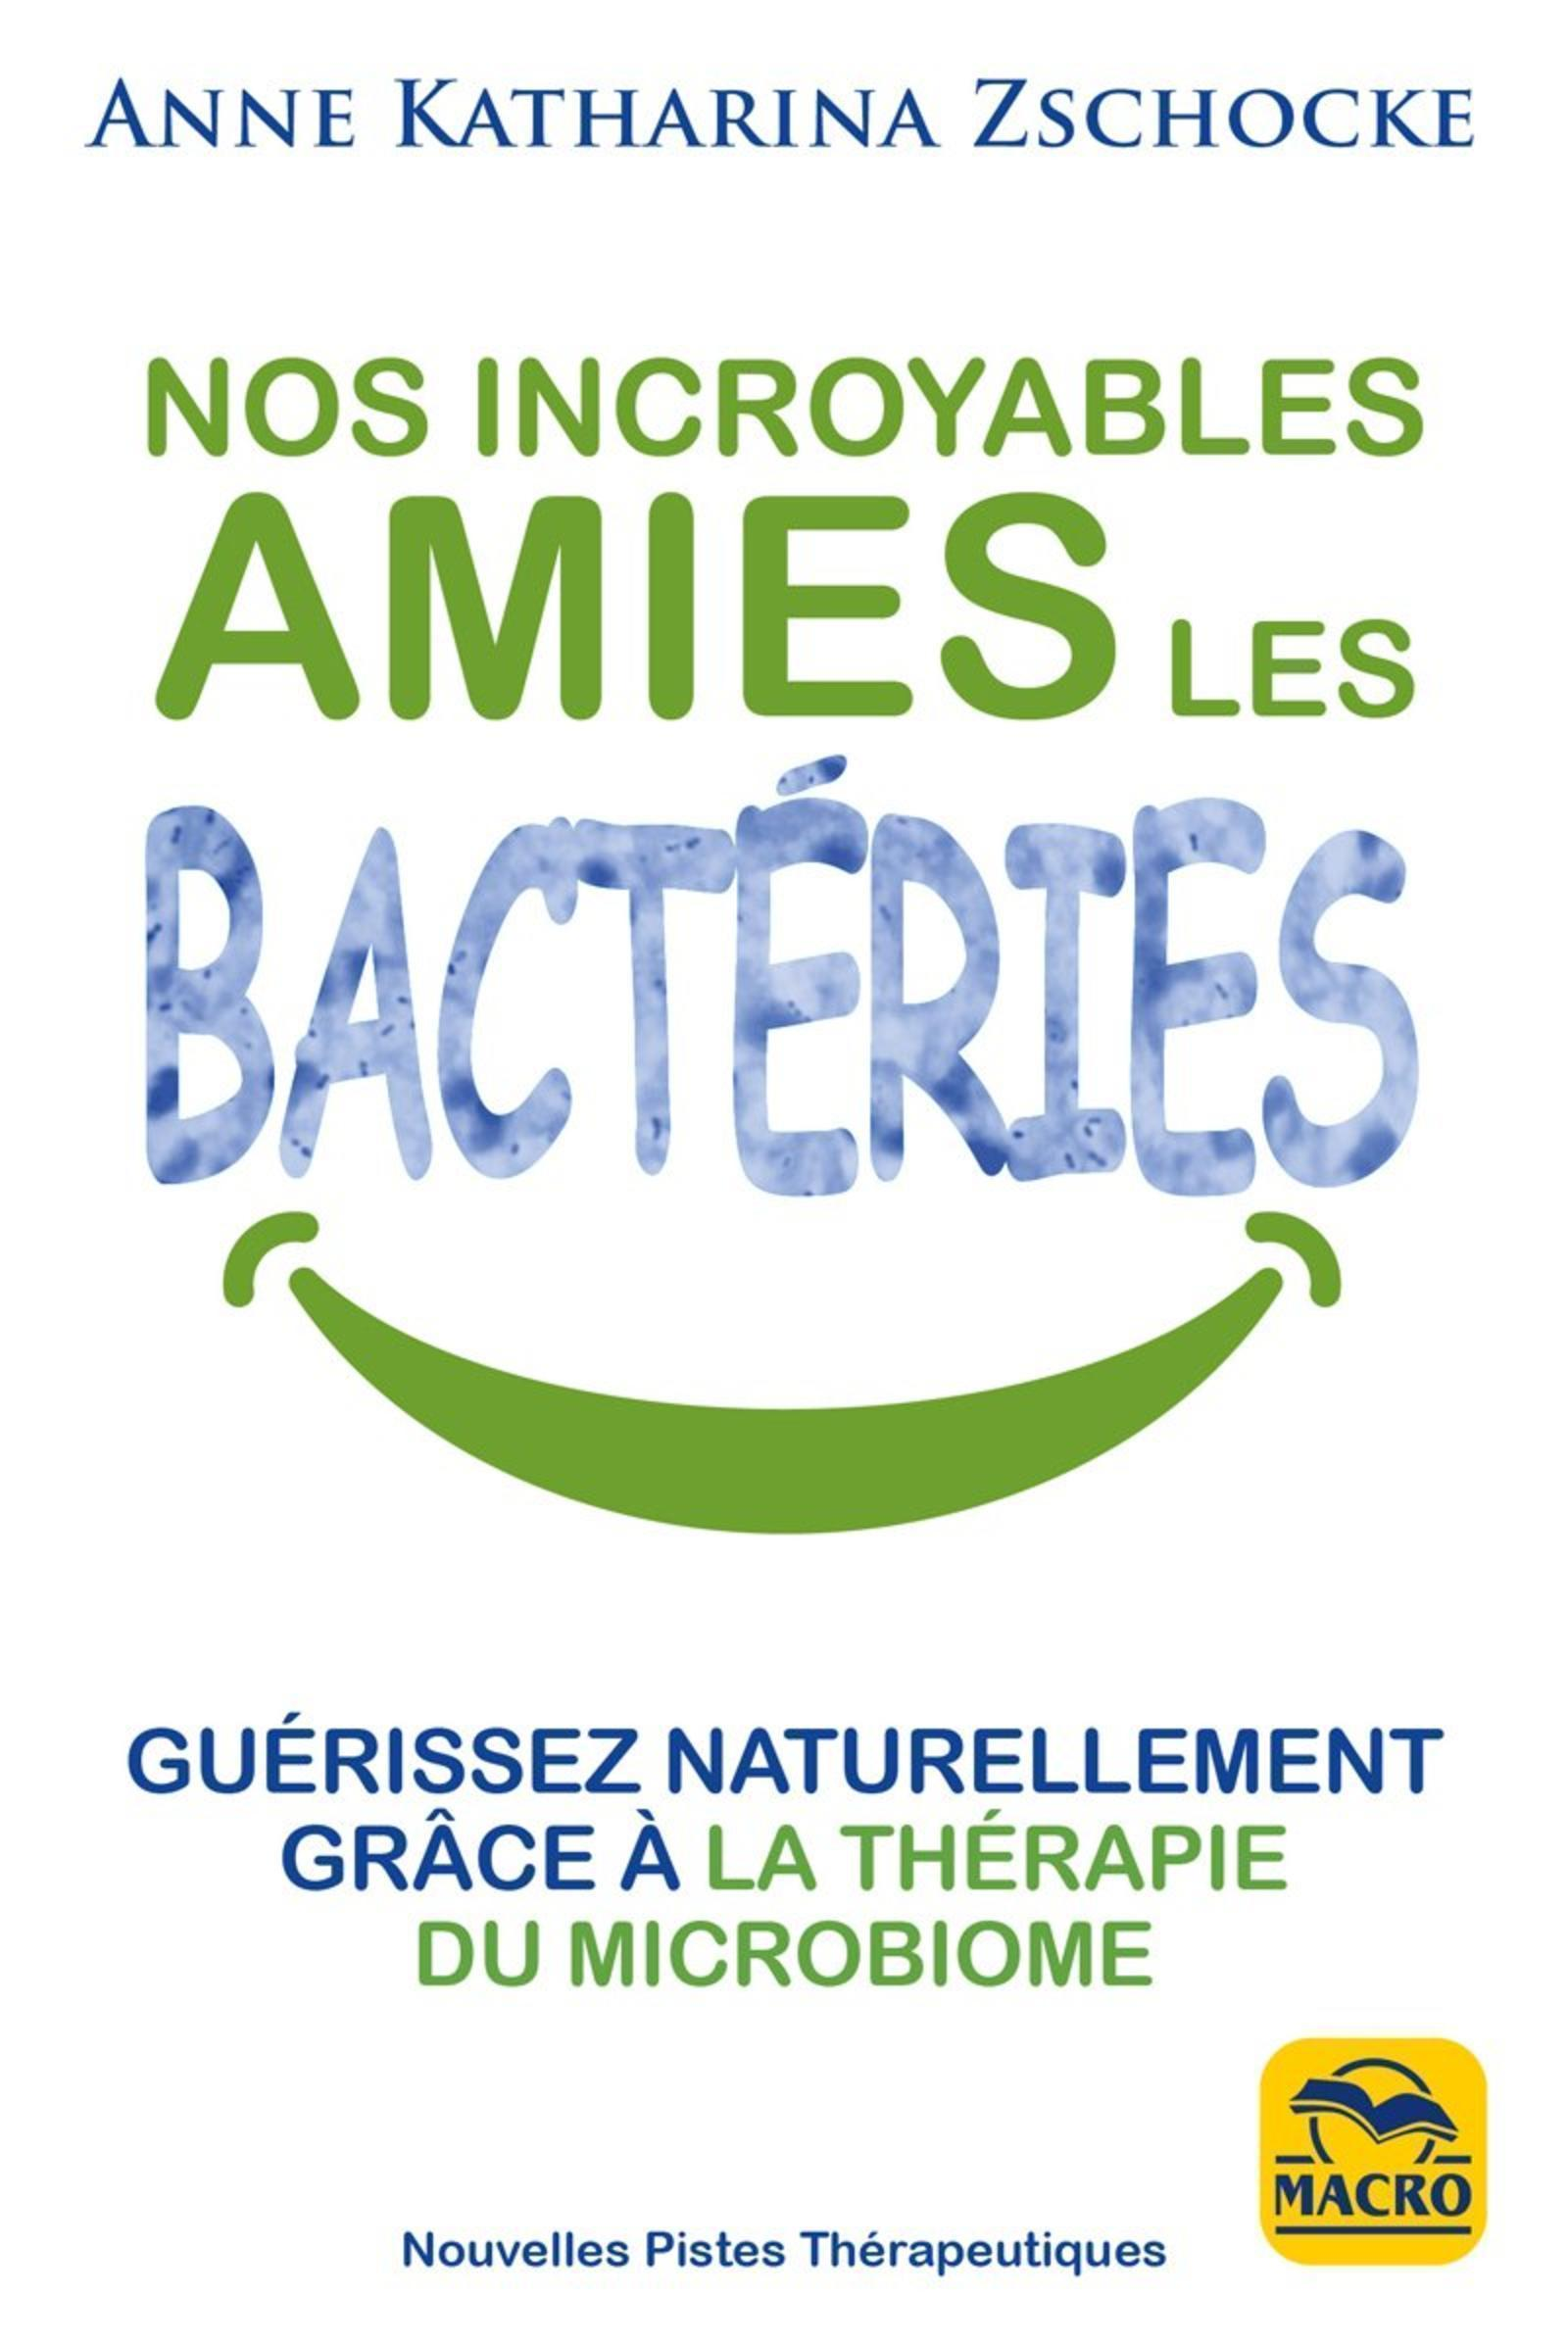 NOS INCROYABLES AMIES LES BACTERIES - GUERISSEZ NATURELLEMENT GRACE A LA THERAPIE MICROBIOME